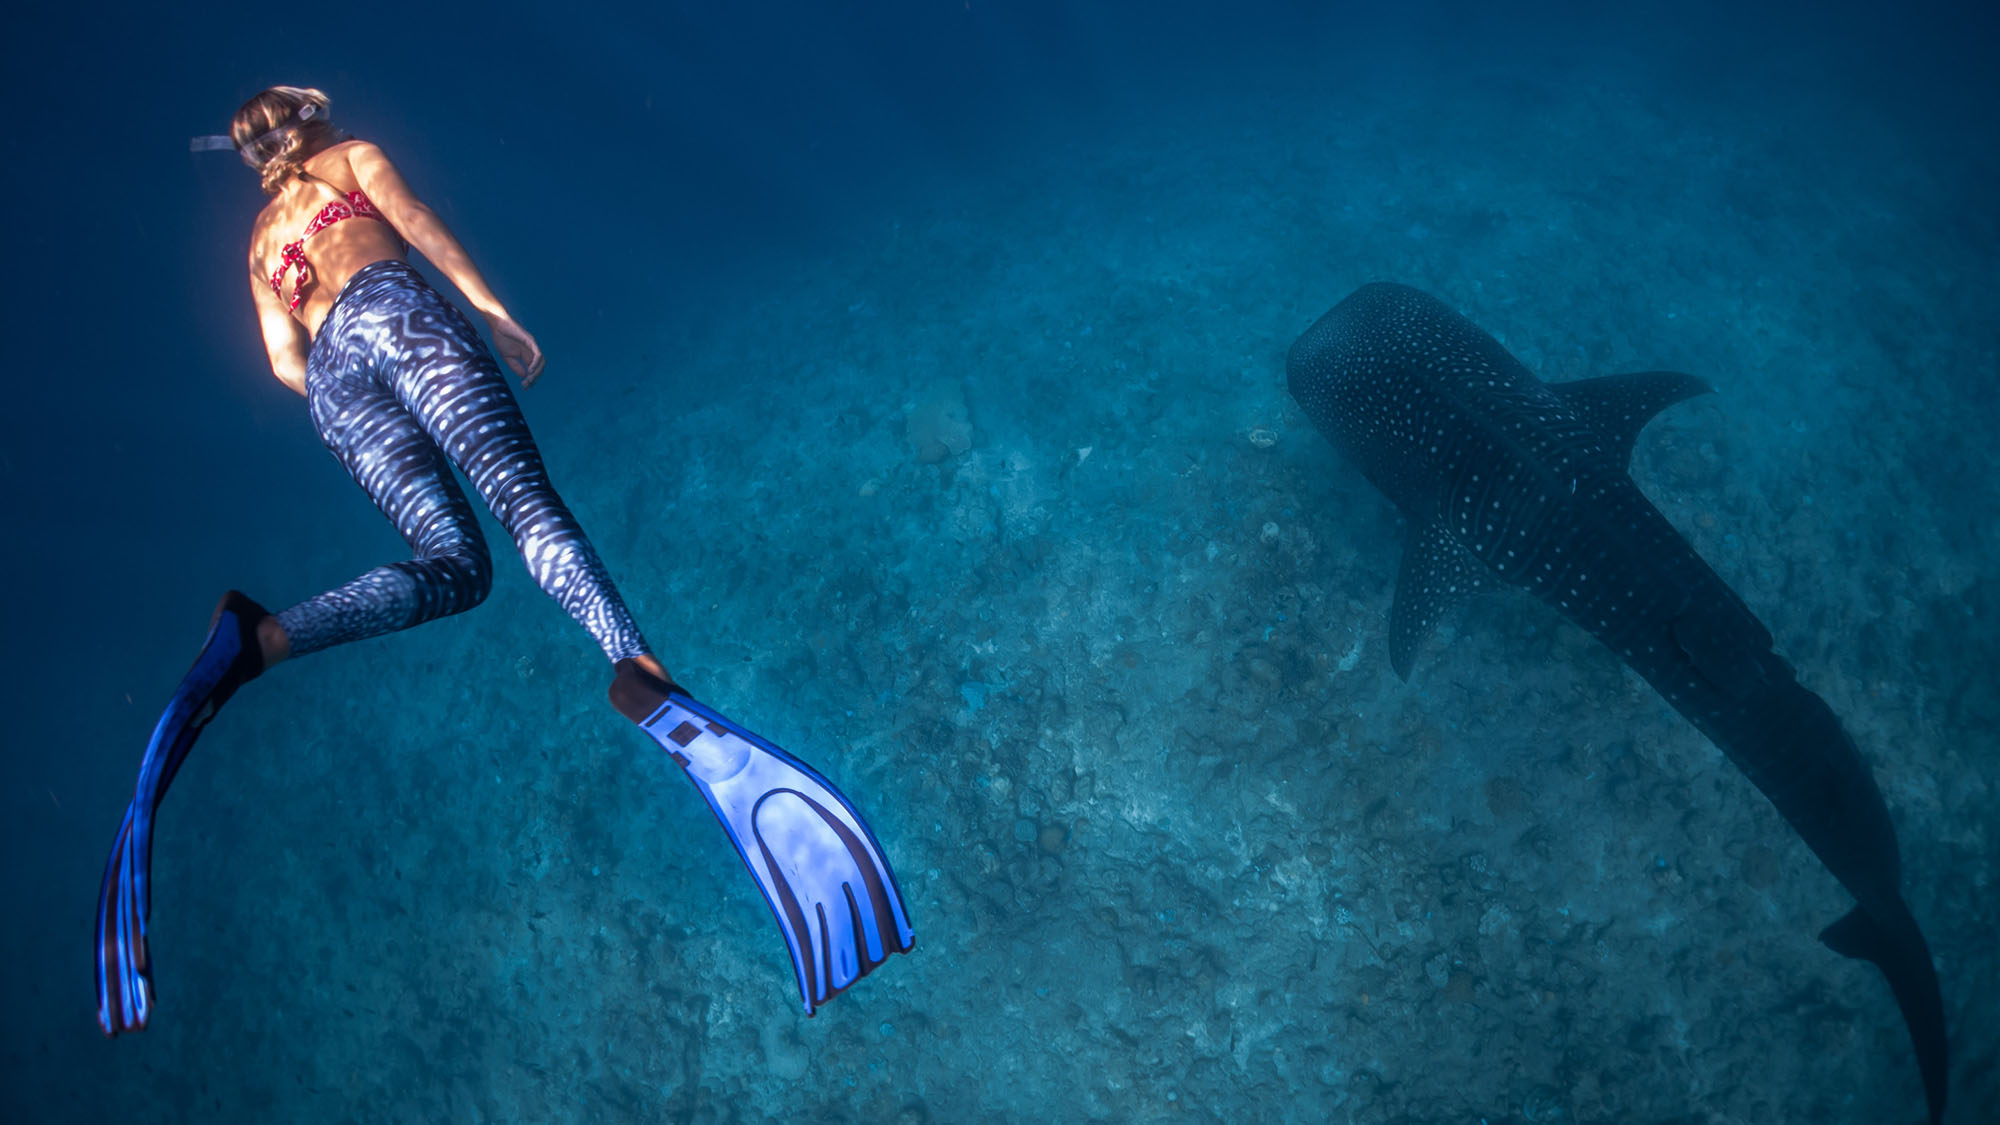 Gives Full Fin Power Cressi Fin Keepers Scuba Diving Fins Snorkeling No More Lost of Thrust for Freediving